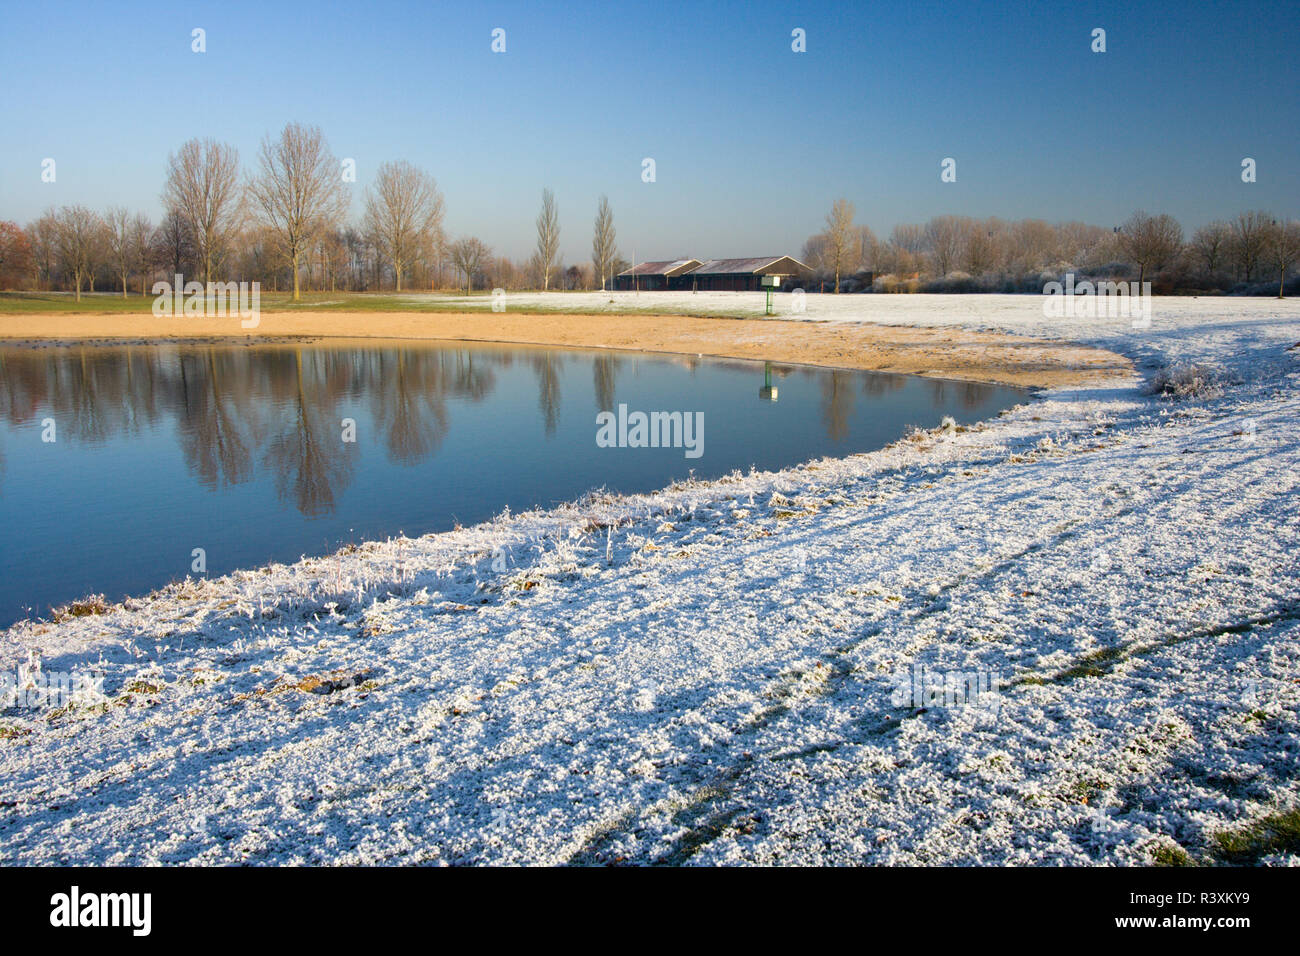 A swimming lake in wintertime. Auesee in Wesel, Germany - Stock Image